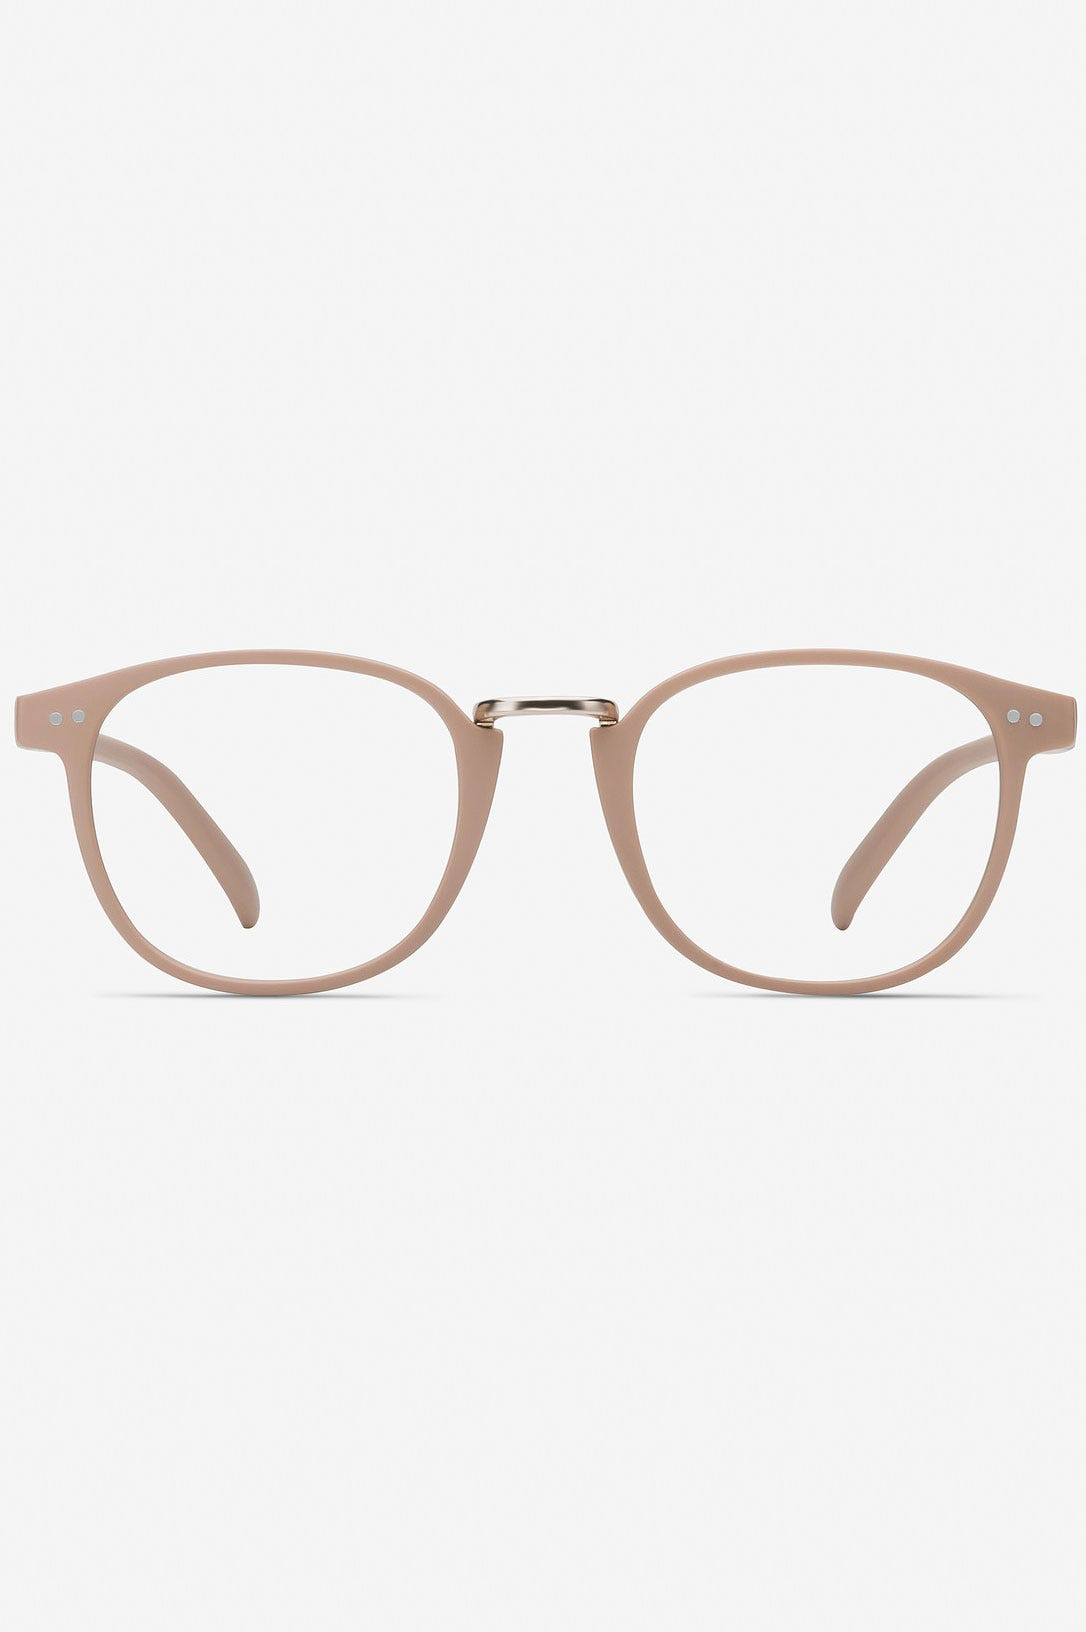 Fashion eyeglasses non prescription 59